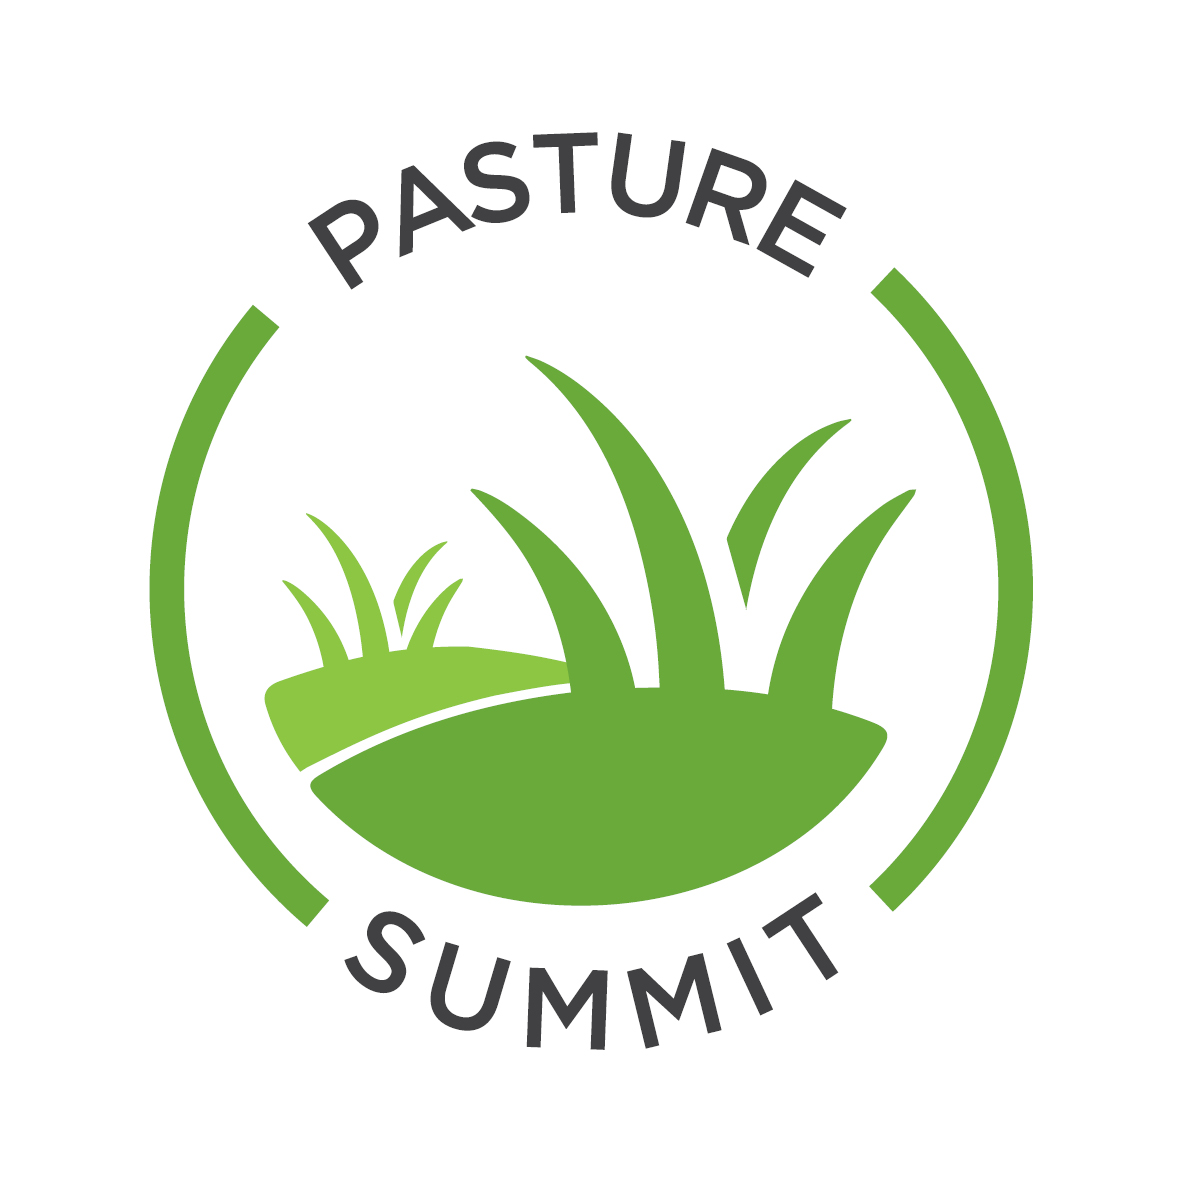 Pasture Summit North Island Spring Event